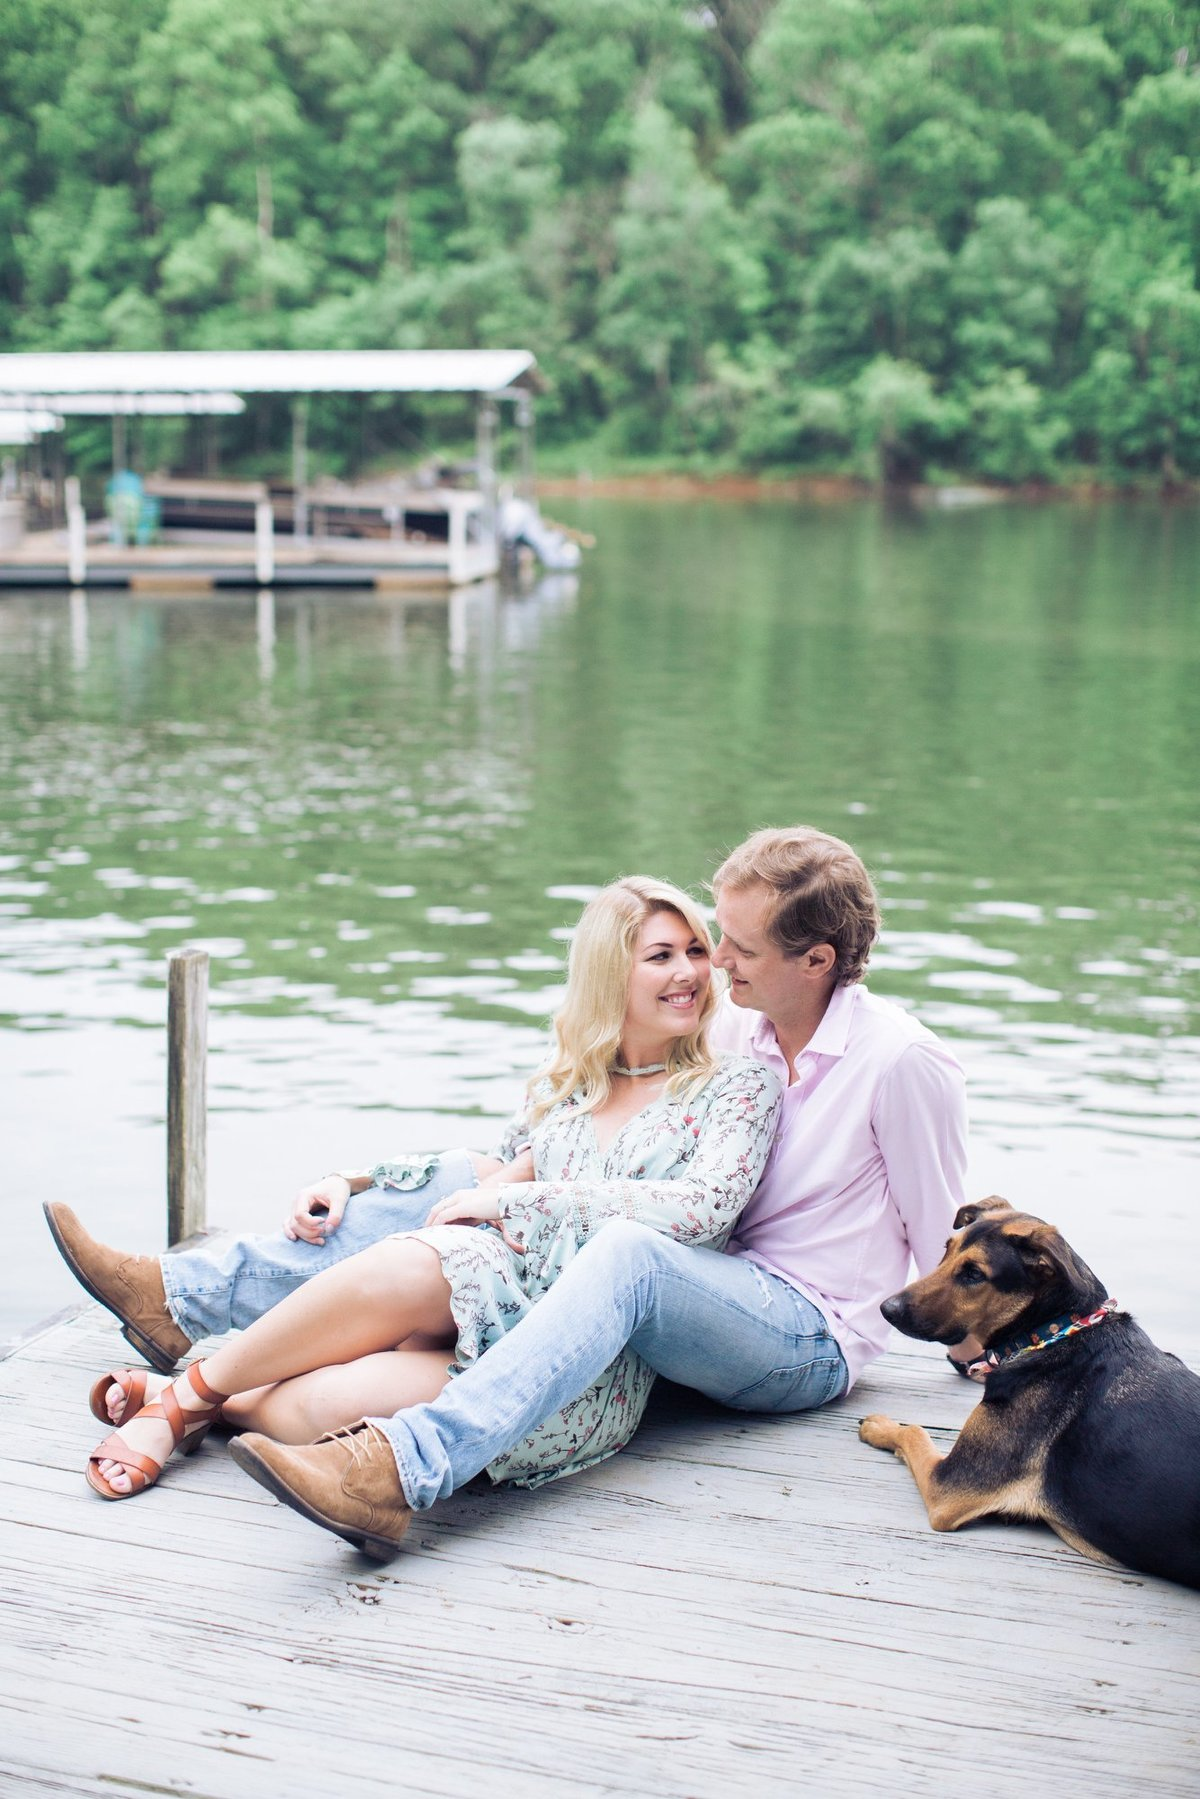 Wedding Photographer, couple sitting on a dock together with their dog